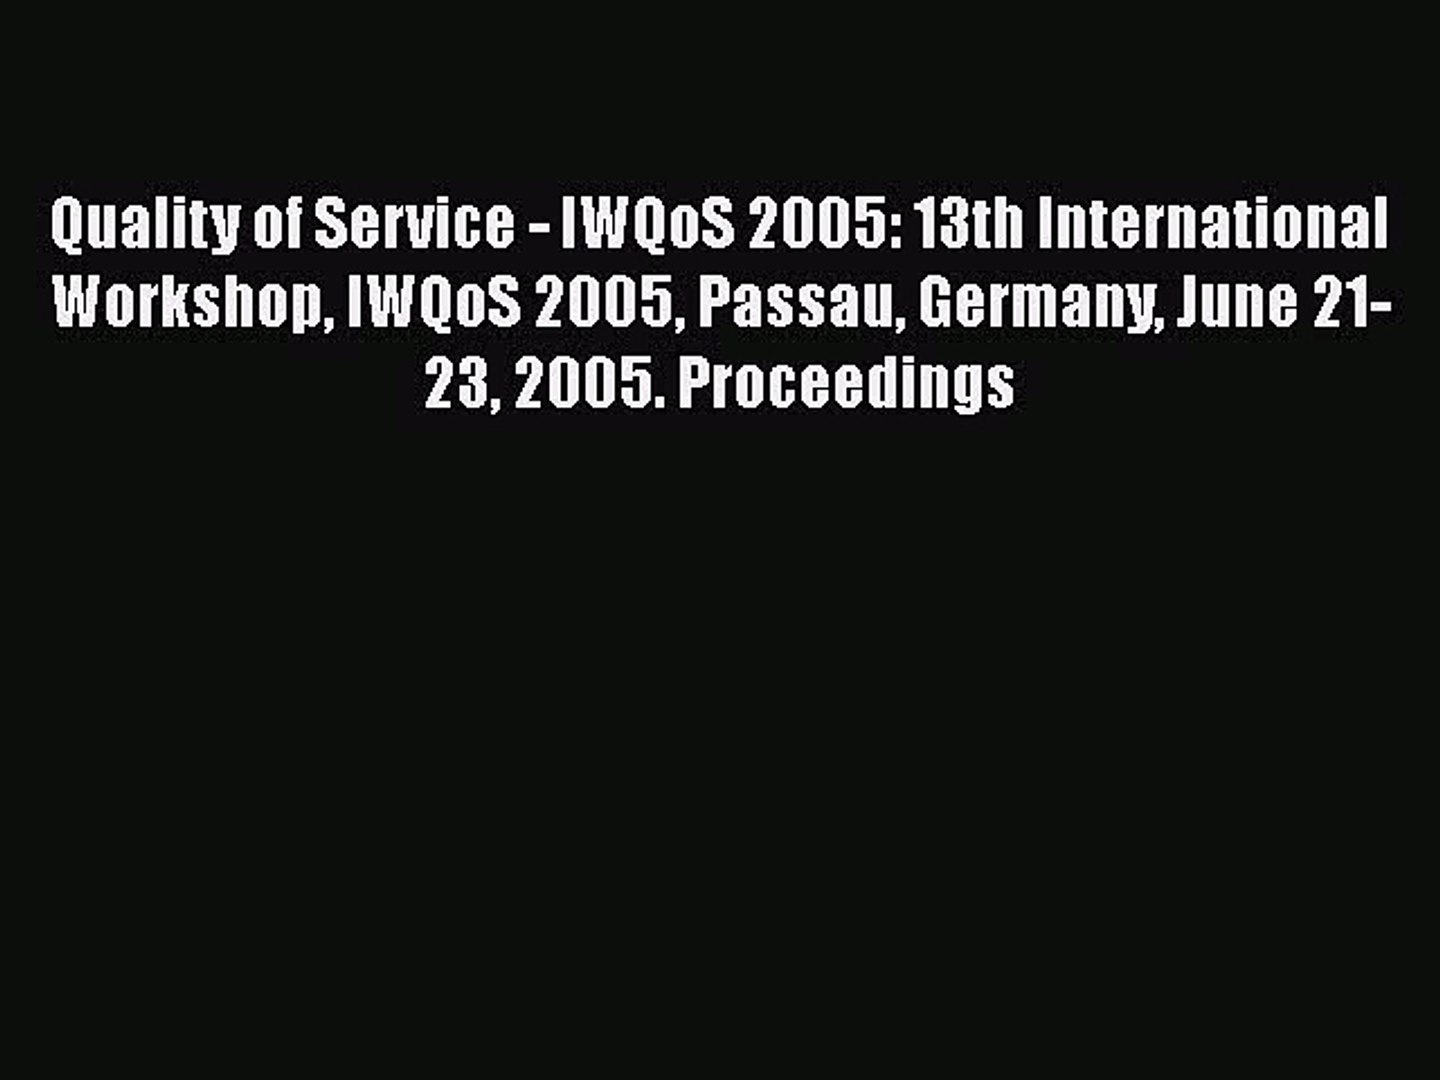 [PDF Download] Quality of Service - IWQoS 2005: 13th International Workshop IWQoS 2005 Passau